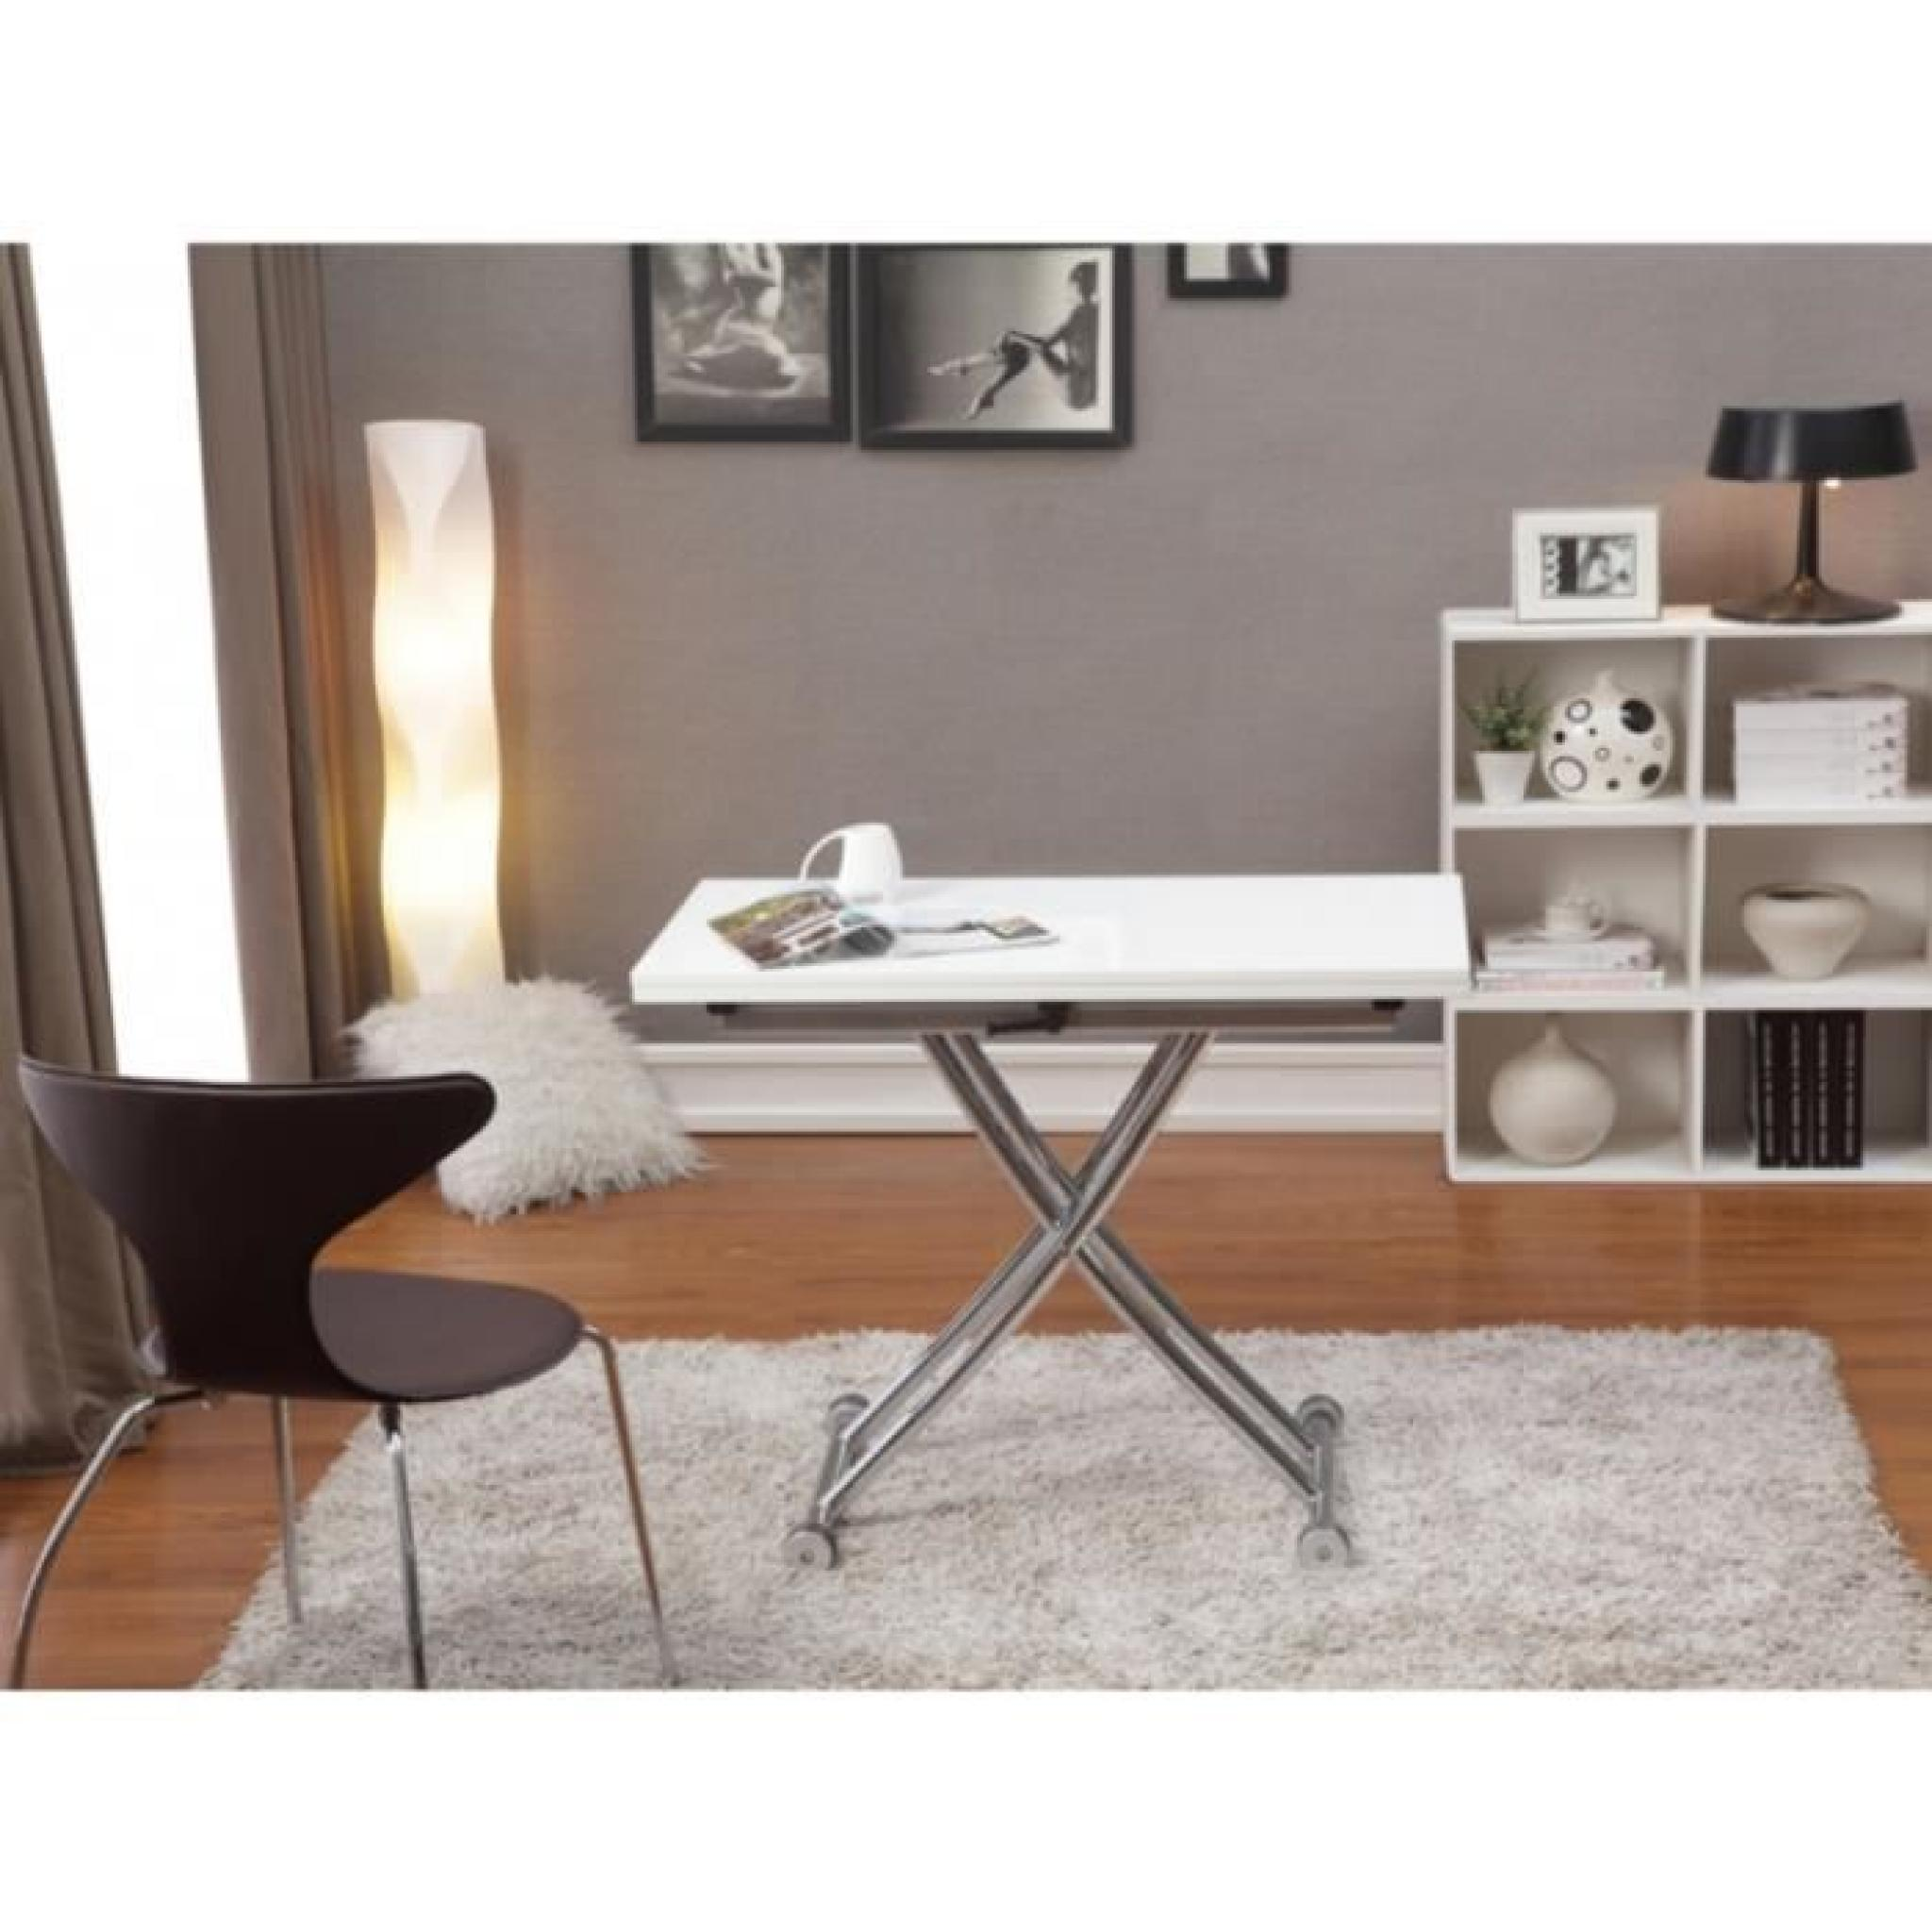 Table Basse Qui Se Transforme En Table Haute Table Basse Haute